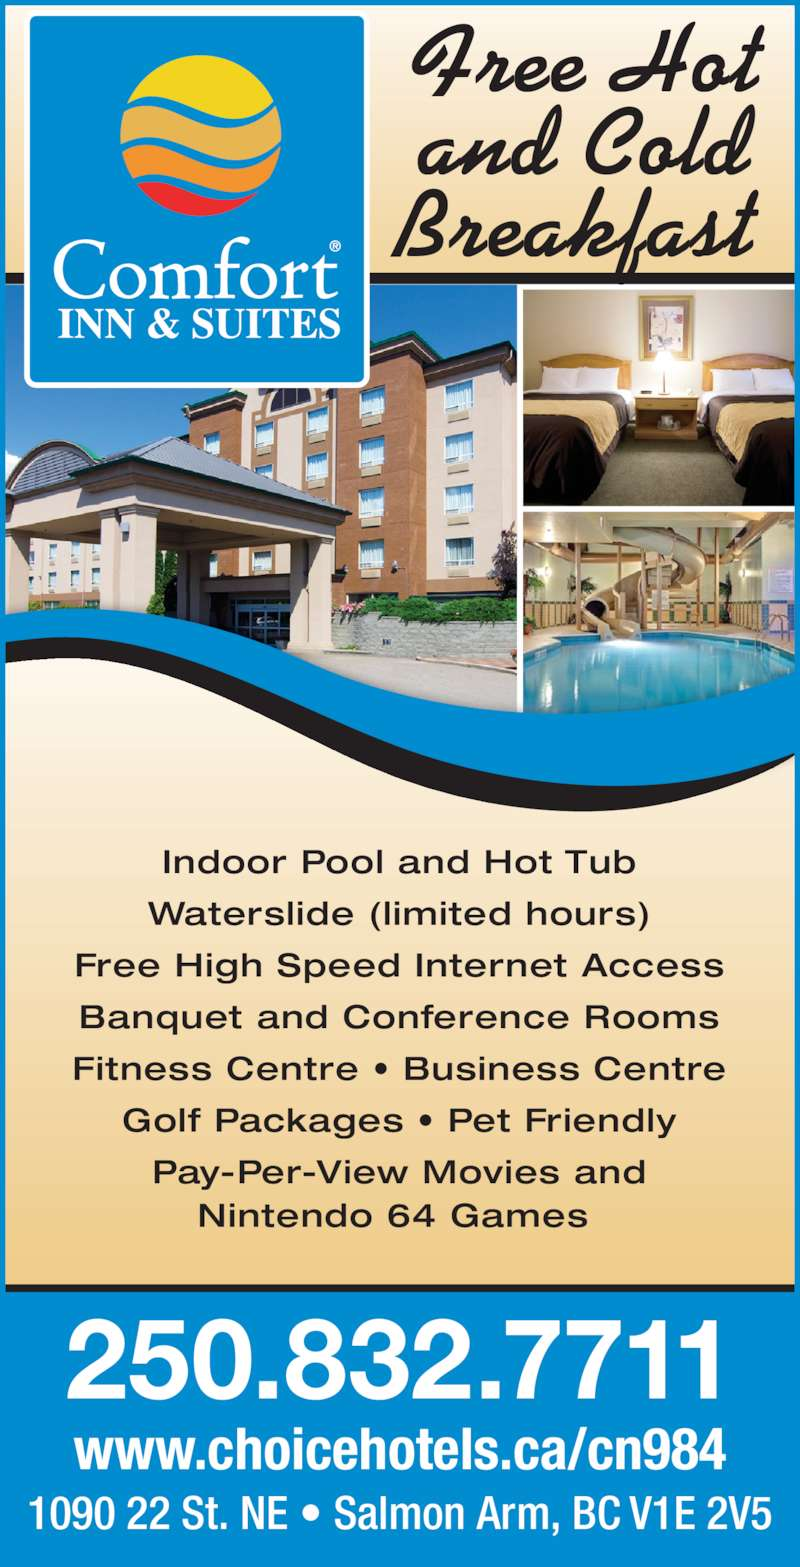 Comfort Inn & Suites (250-832-7711) - Display Ad - Waterslide (limited hours) Free High Speed Internet Access Banquet and Conference Rooms Fitness Centre • Business Centre Golf Packages • Pet Friendly Pay-Per-View Movies and Nintendo 64 Games  250.832.7711 1090 22 St. NE • Salmon Arm, BC V1E 2V5 www.choicehotels.ca/cn984 Free Hot and Cold Breakfast  Indoor Pool and Hot Tub